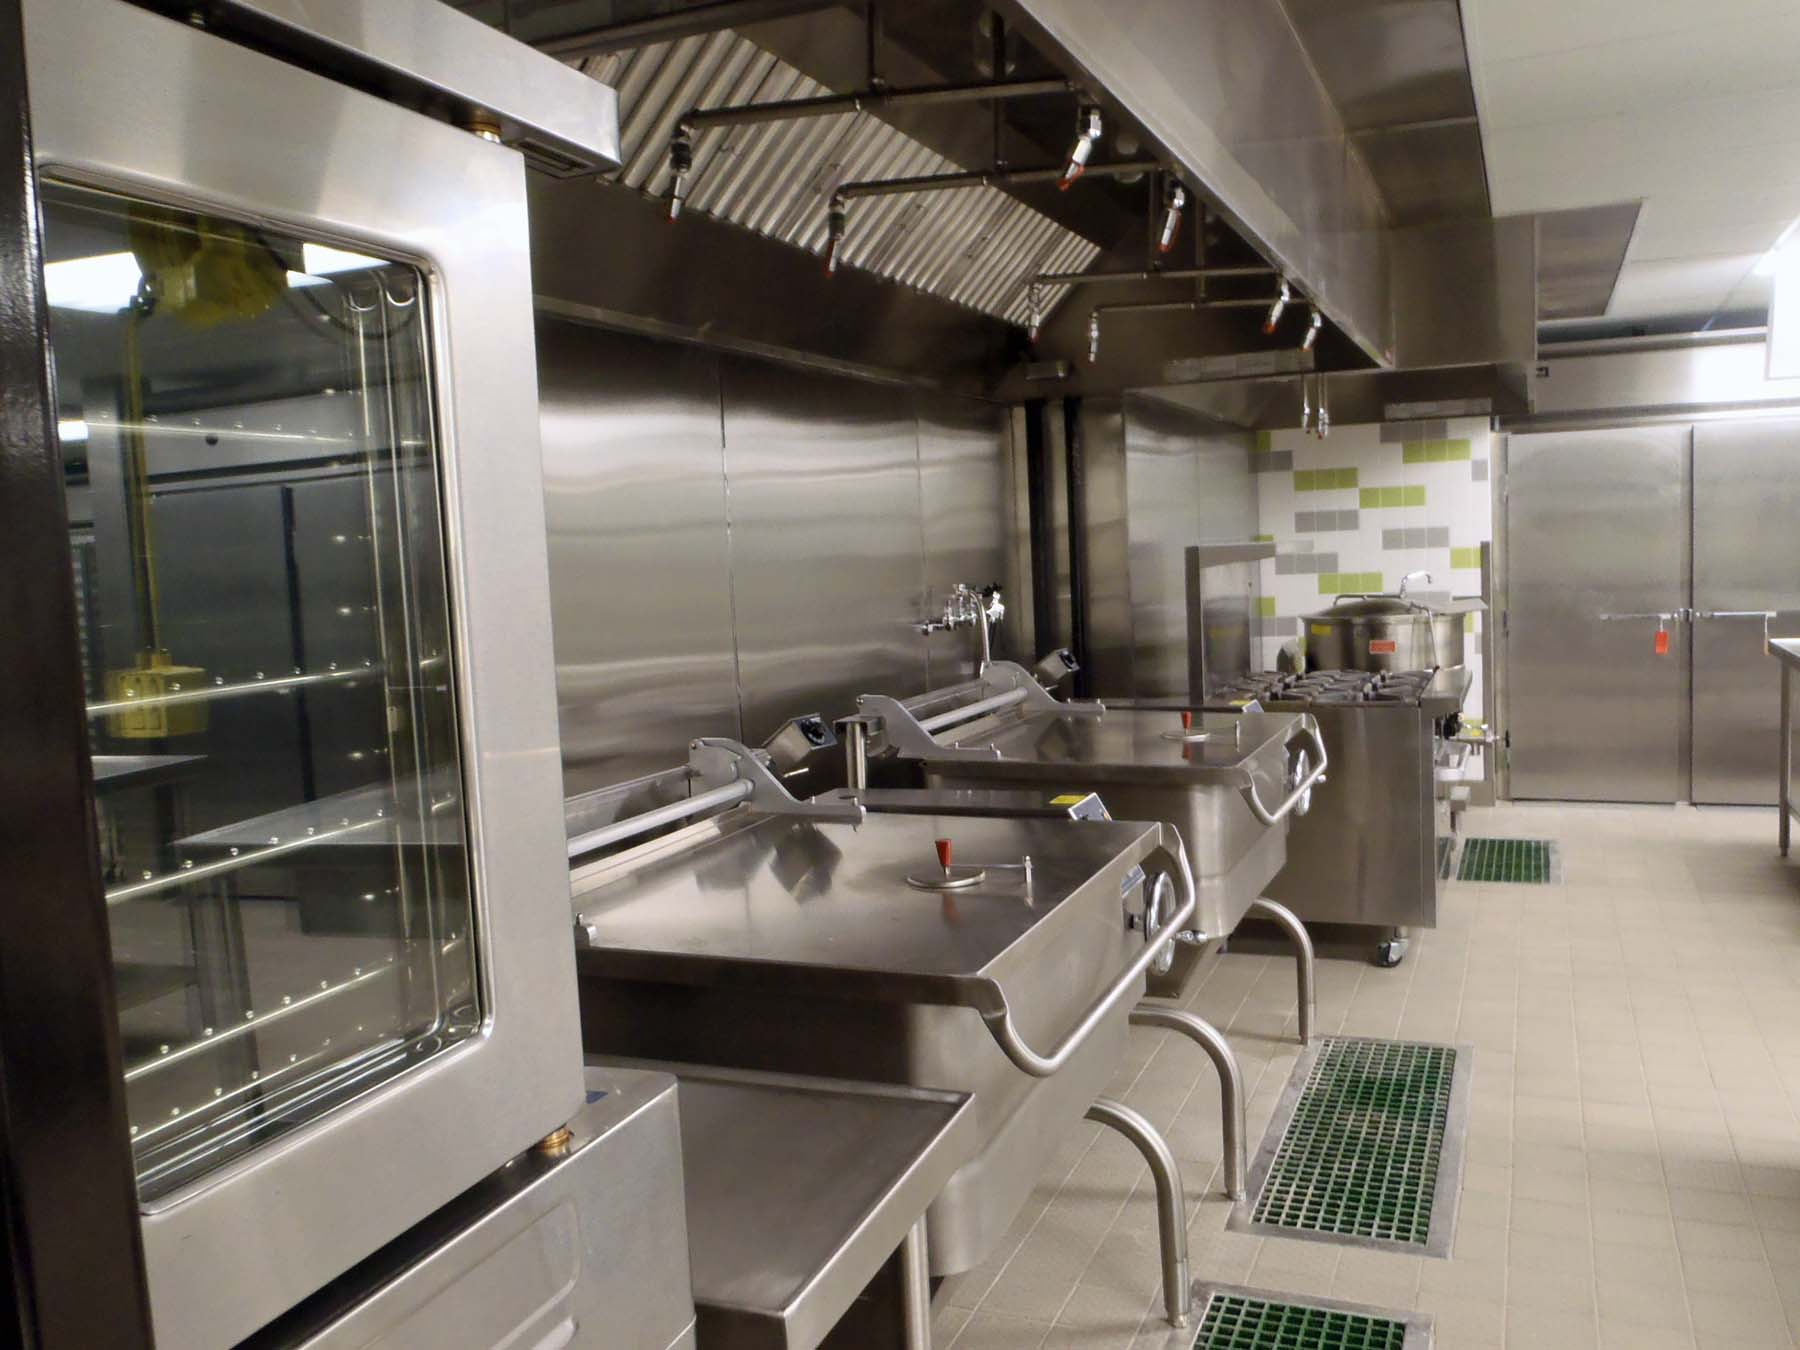 design a commercial kitchen commercial kitchen design brisbane picture ideas best interior small restaurant blueprints was related commercial kitchen design commercial kitchen specialists exhaust hood design